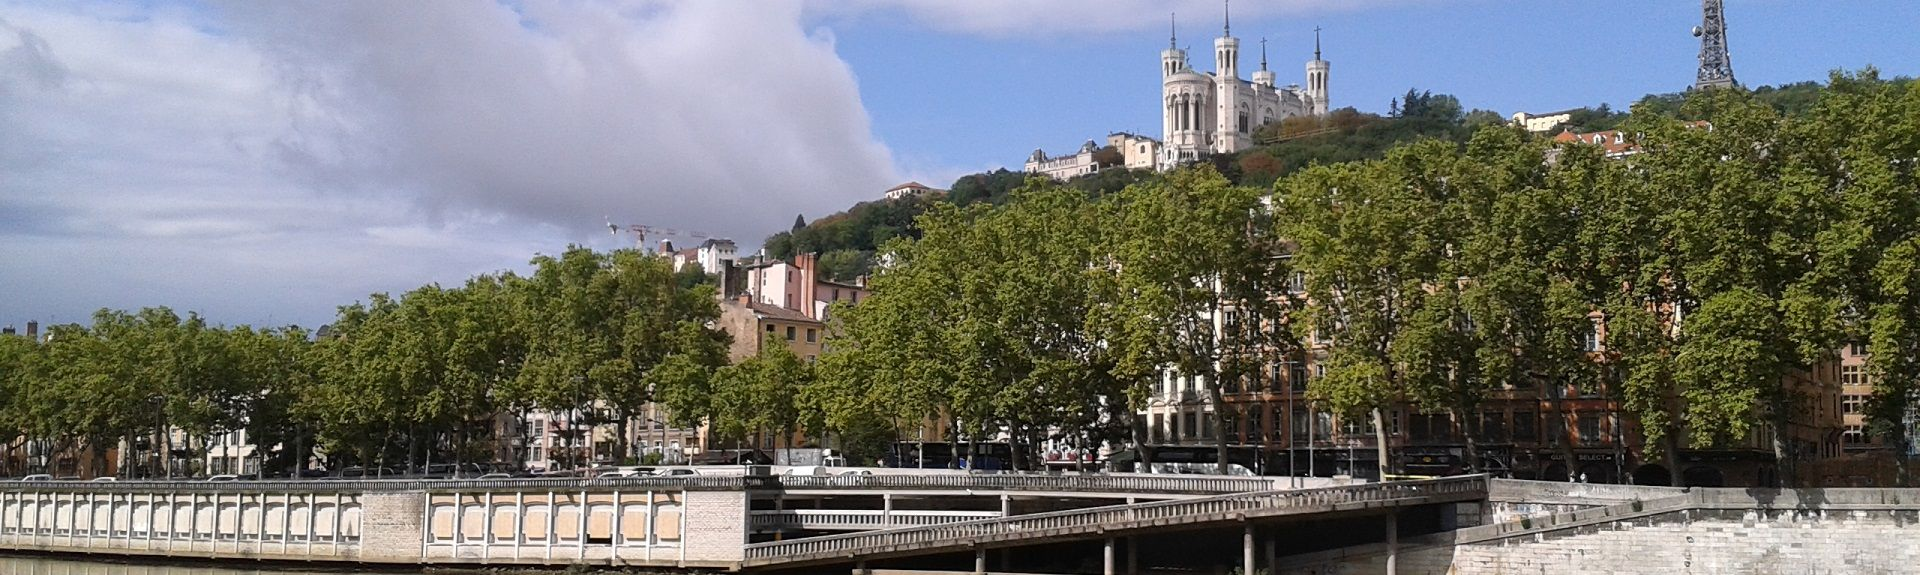 5th Arrondissement, Lyon, France